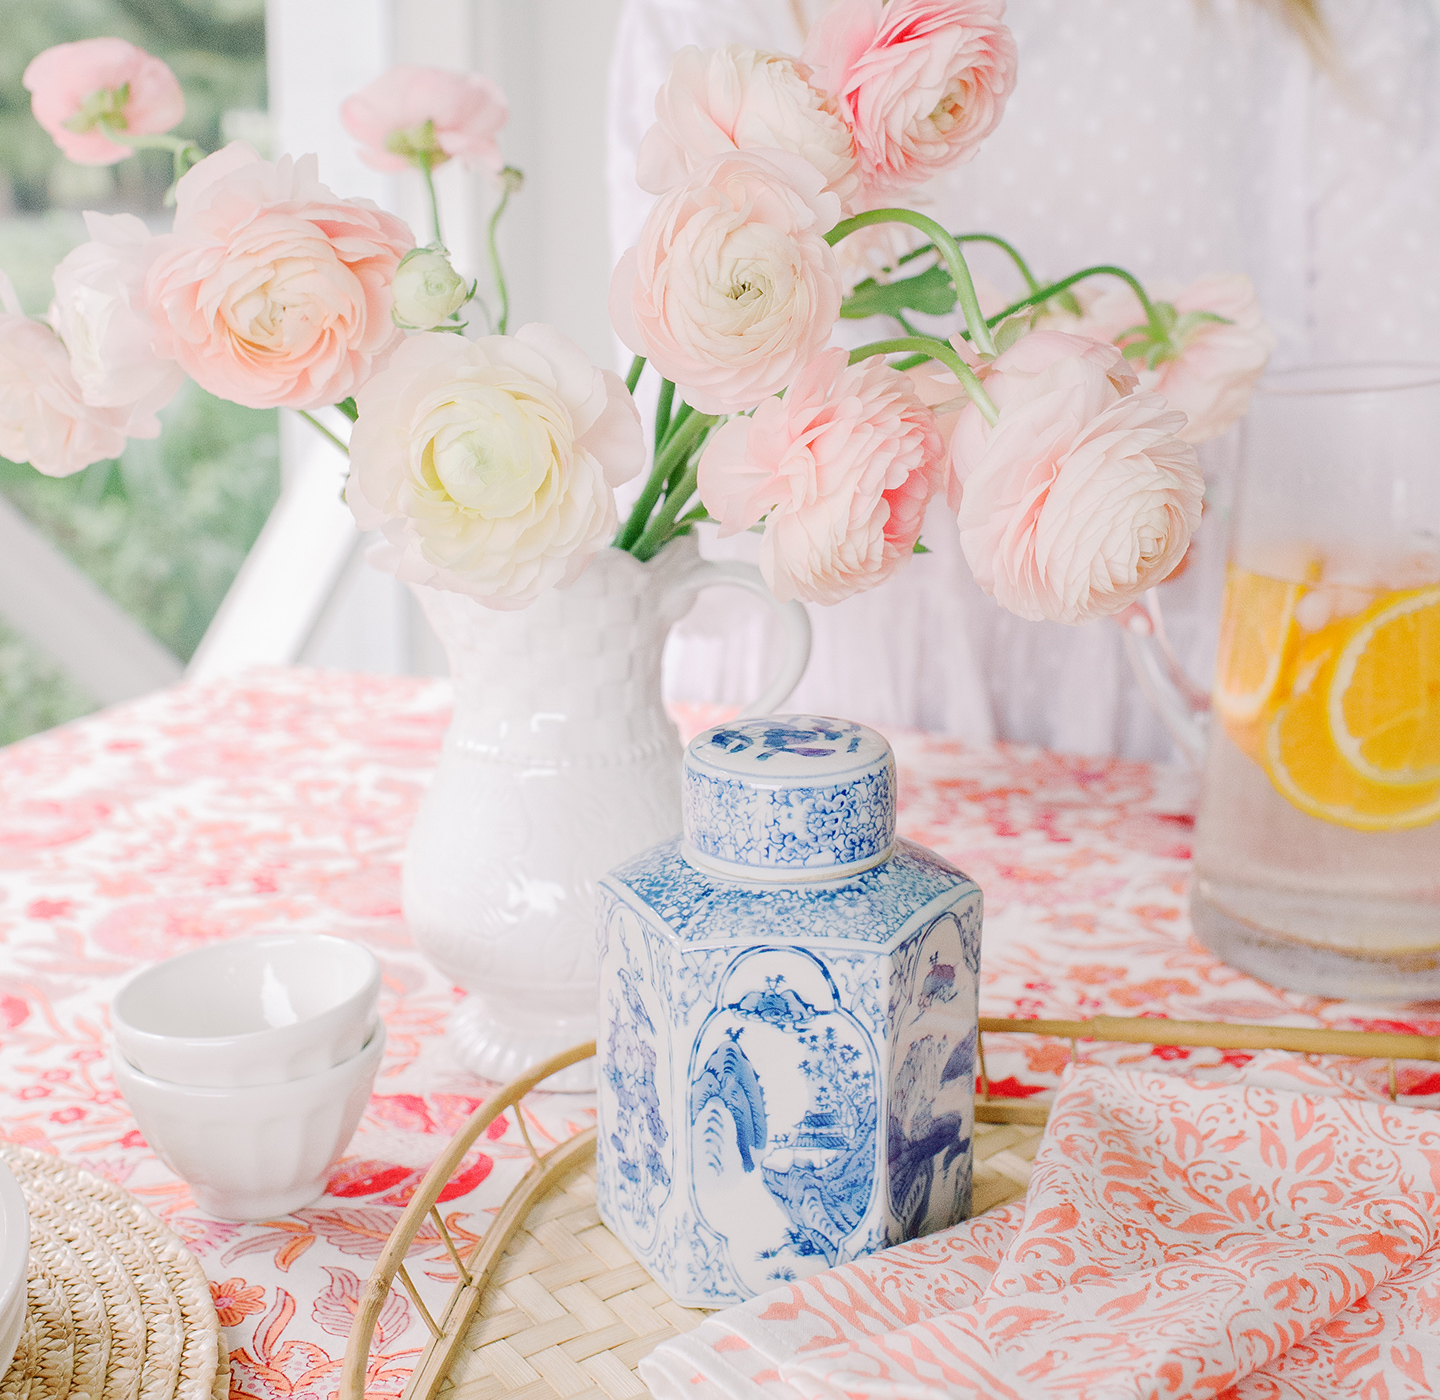 Chinoiserie Inspired Colorful Spring Tabletop Spread